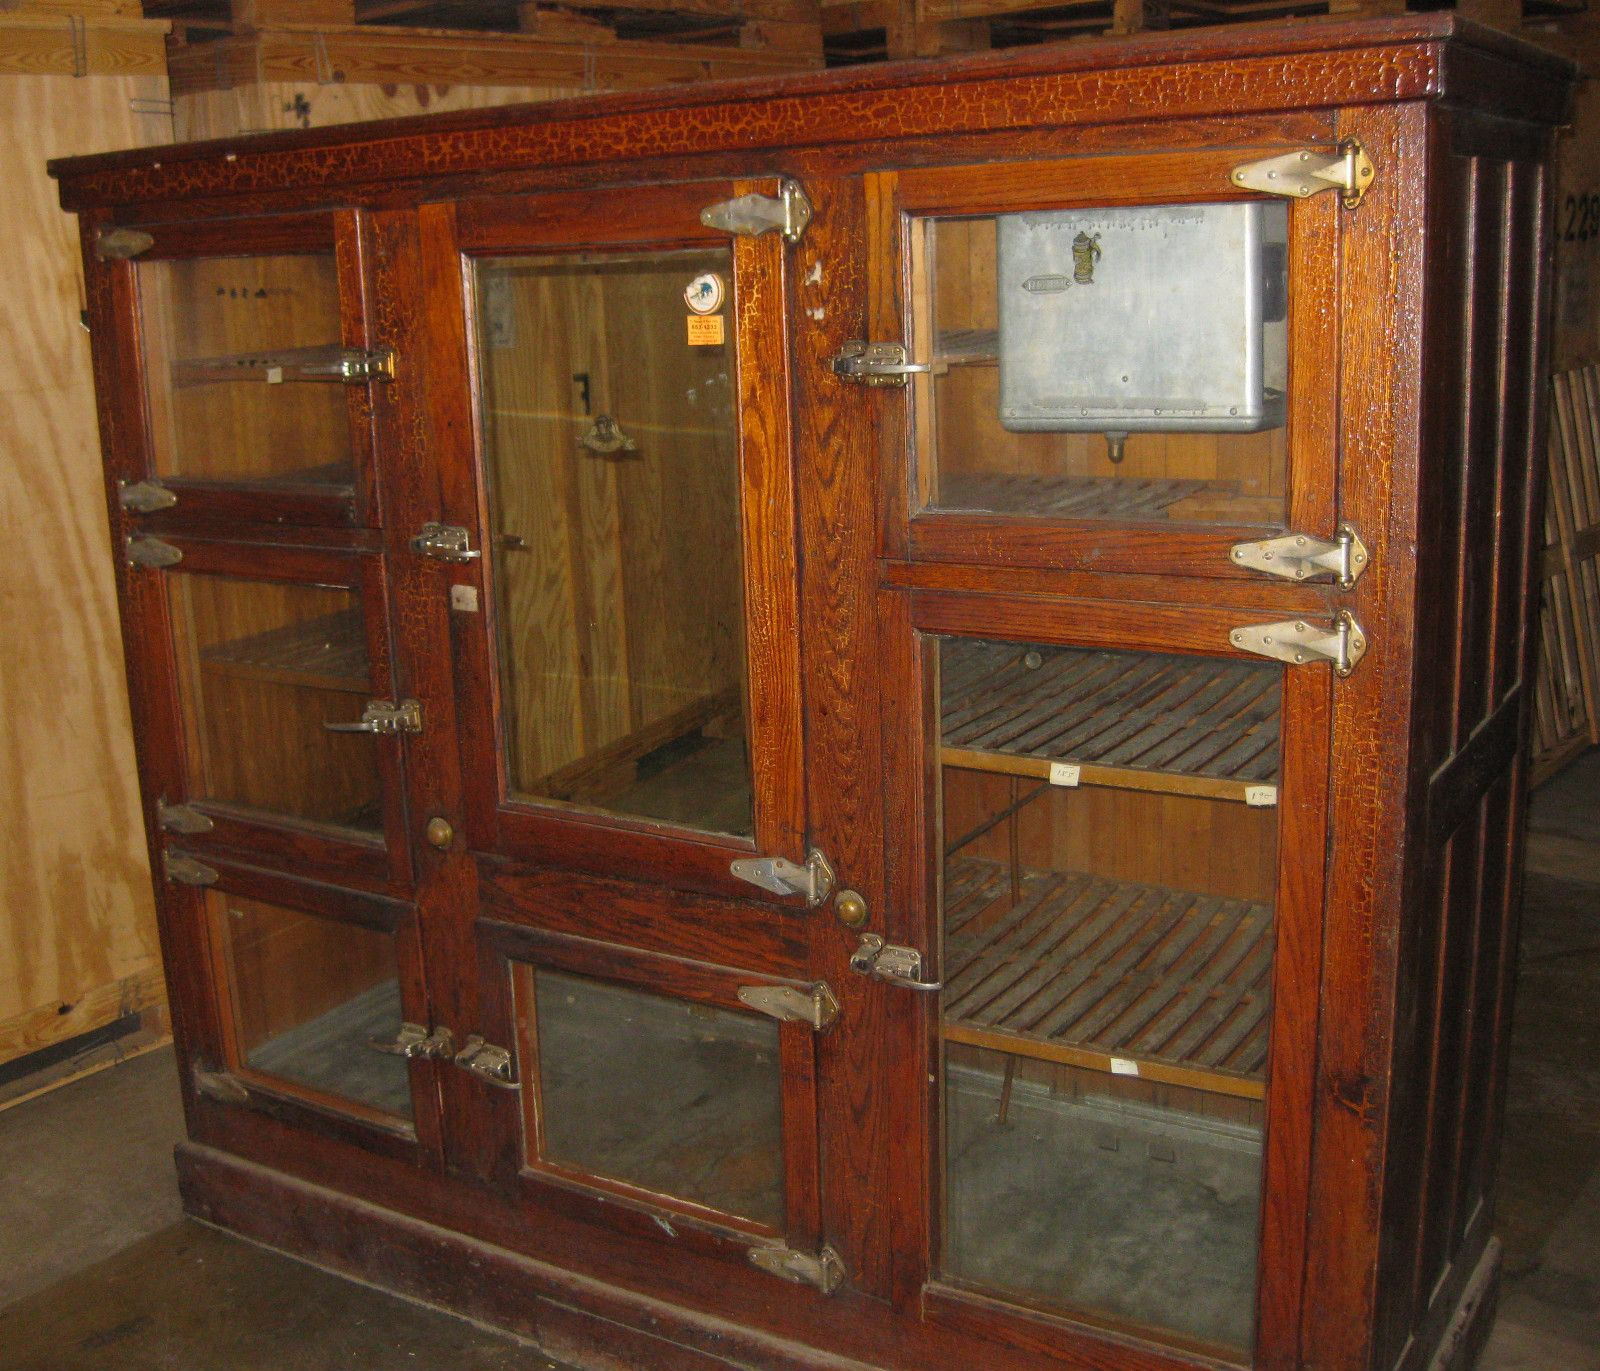 Antique vintage unfinished refrigerators - Vintage Kitchen